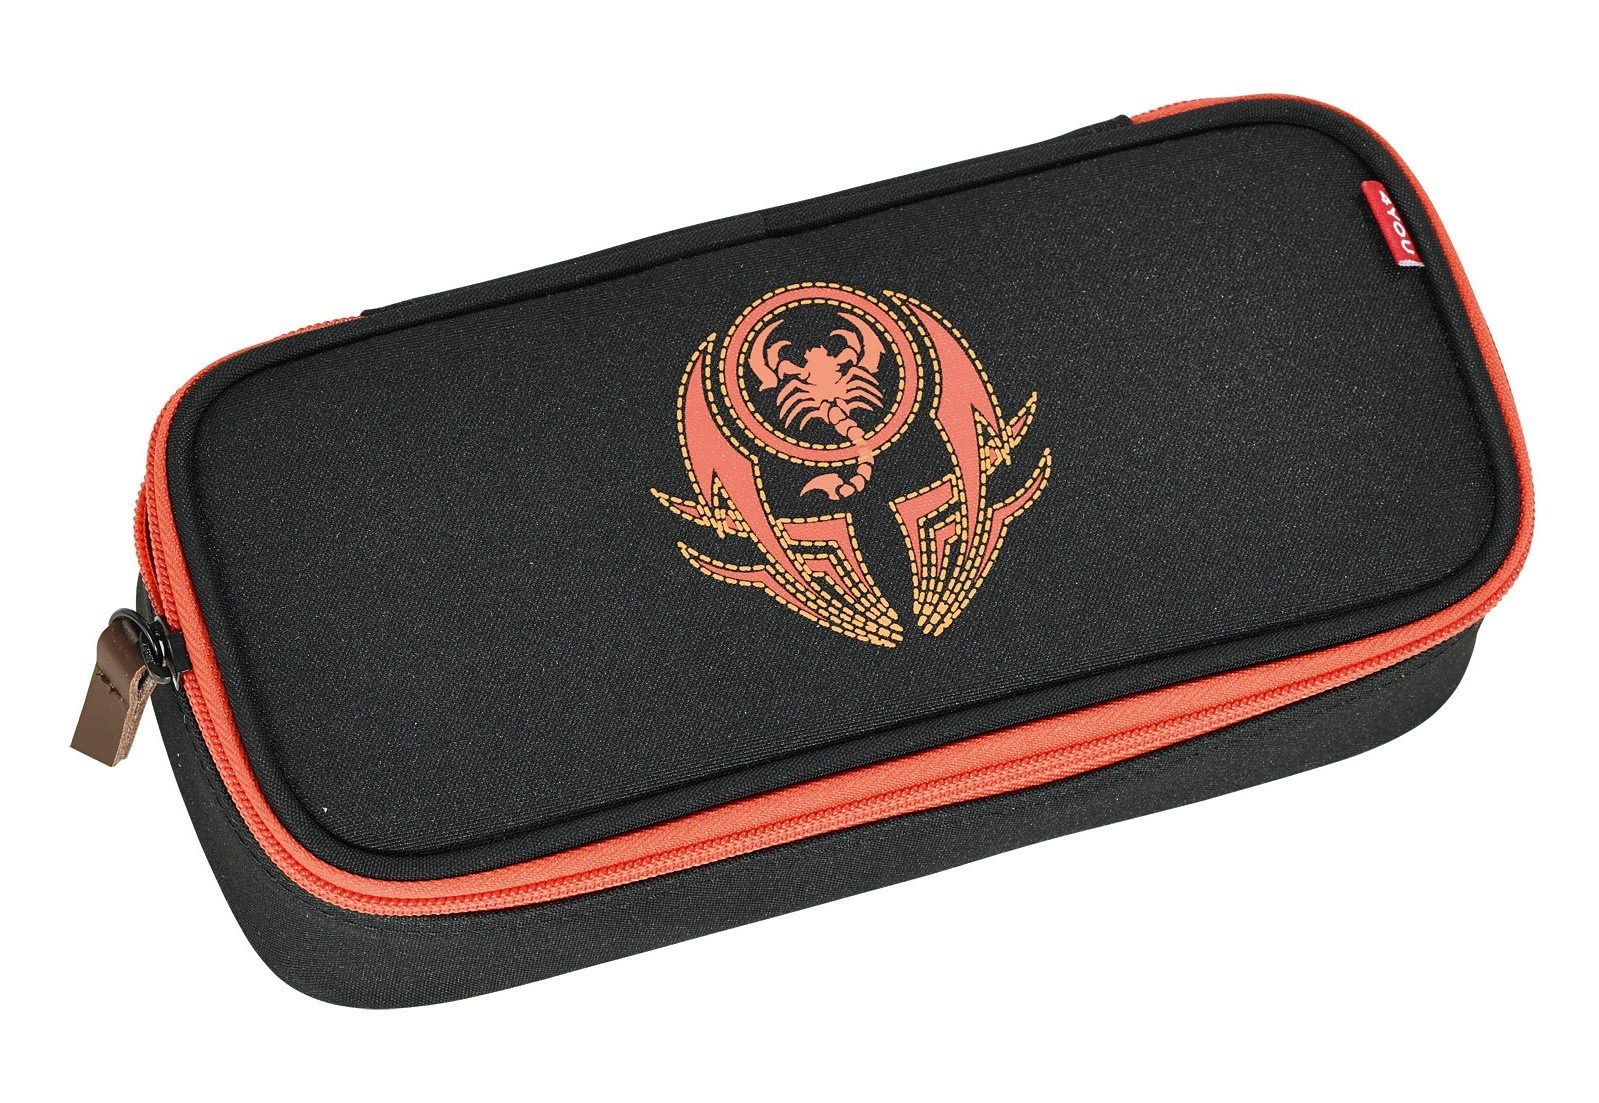 4YOU Mäppchen mit Geodreieck®, Scorpio, »Pencil Case«